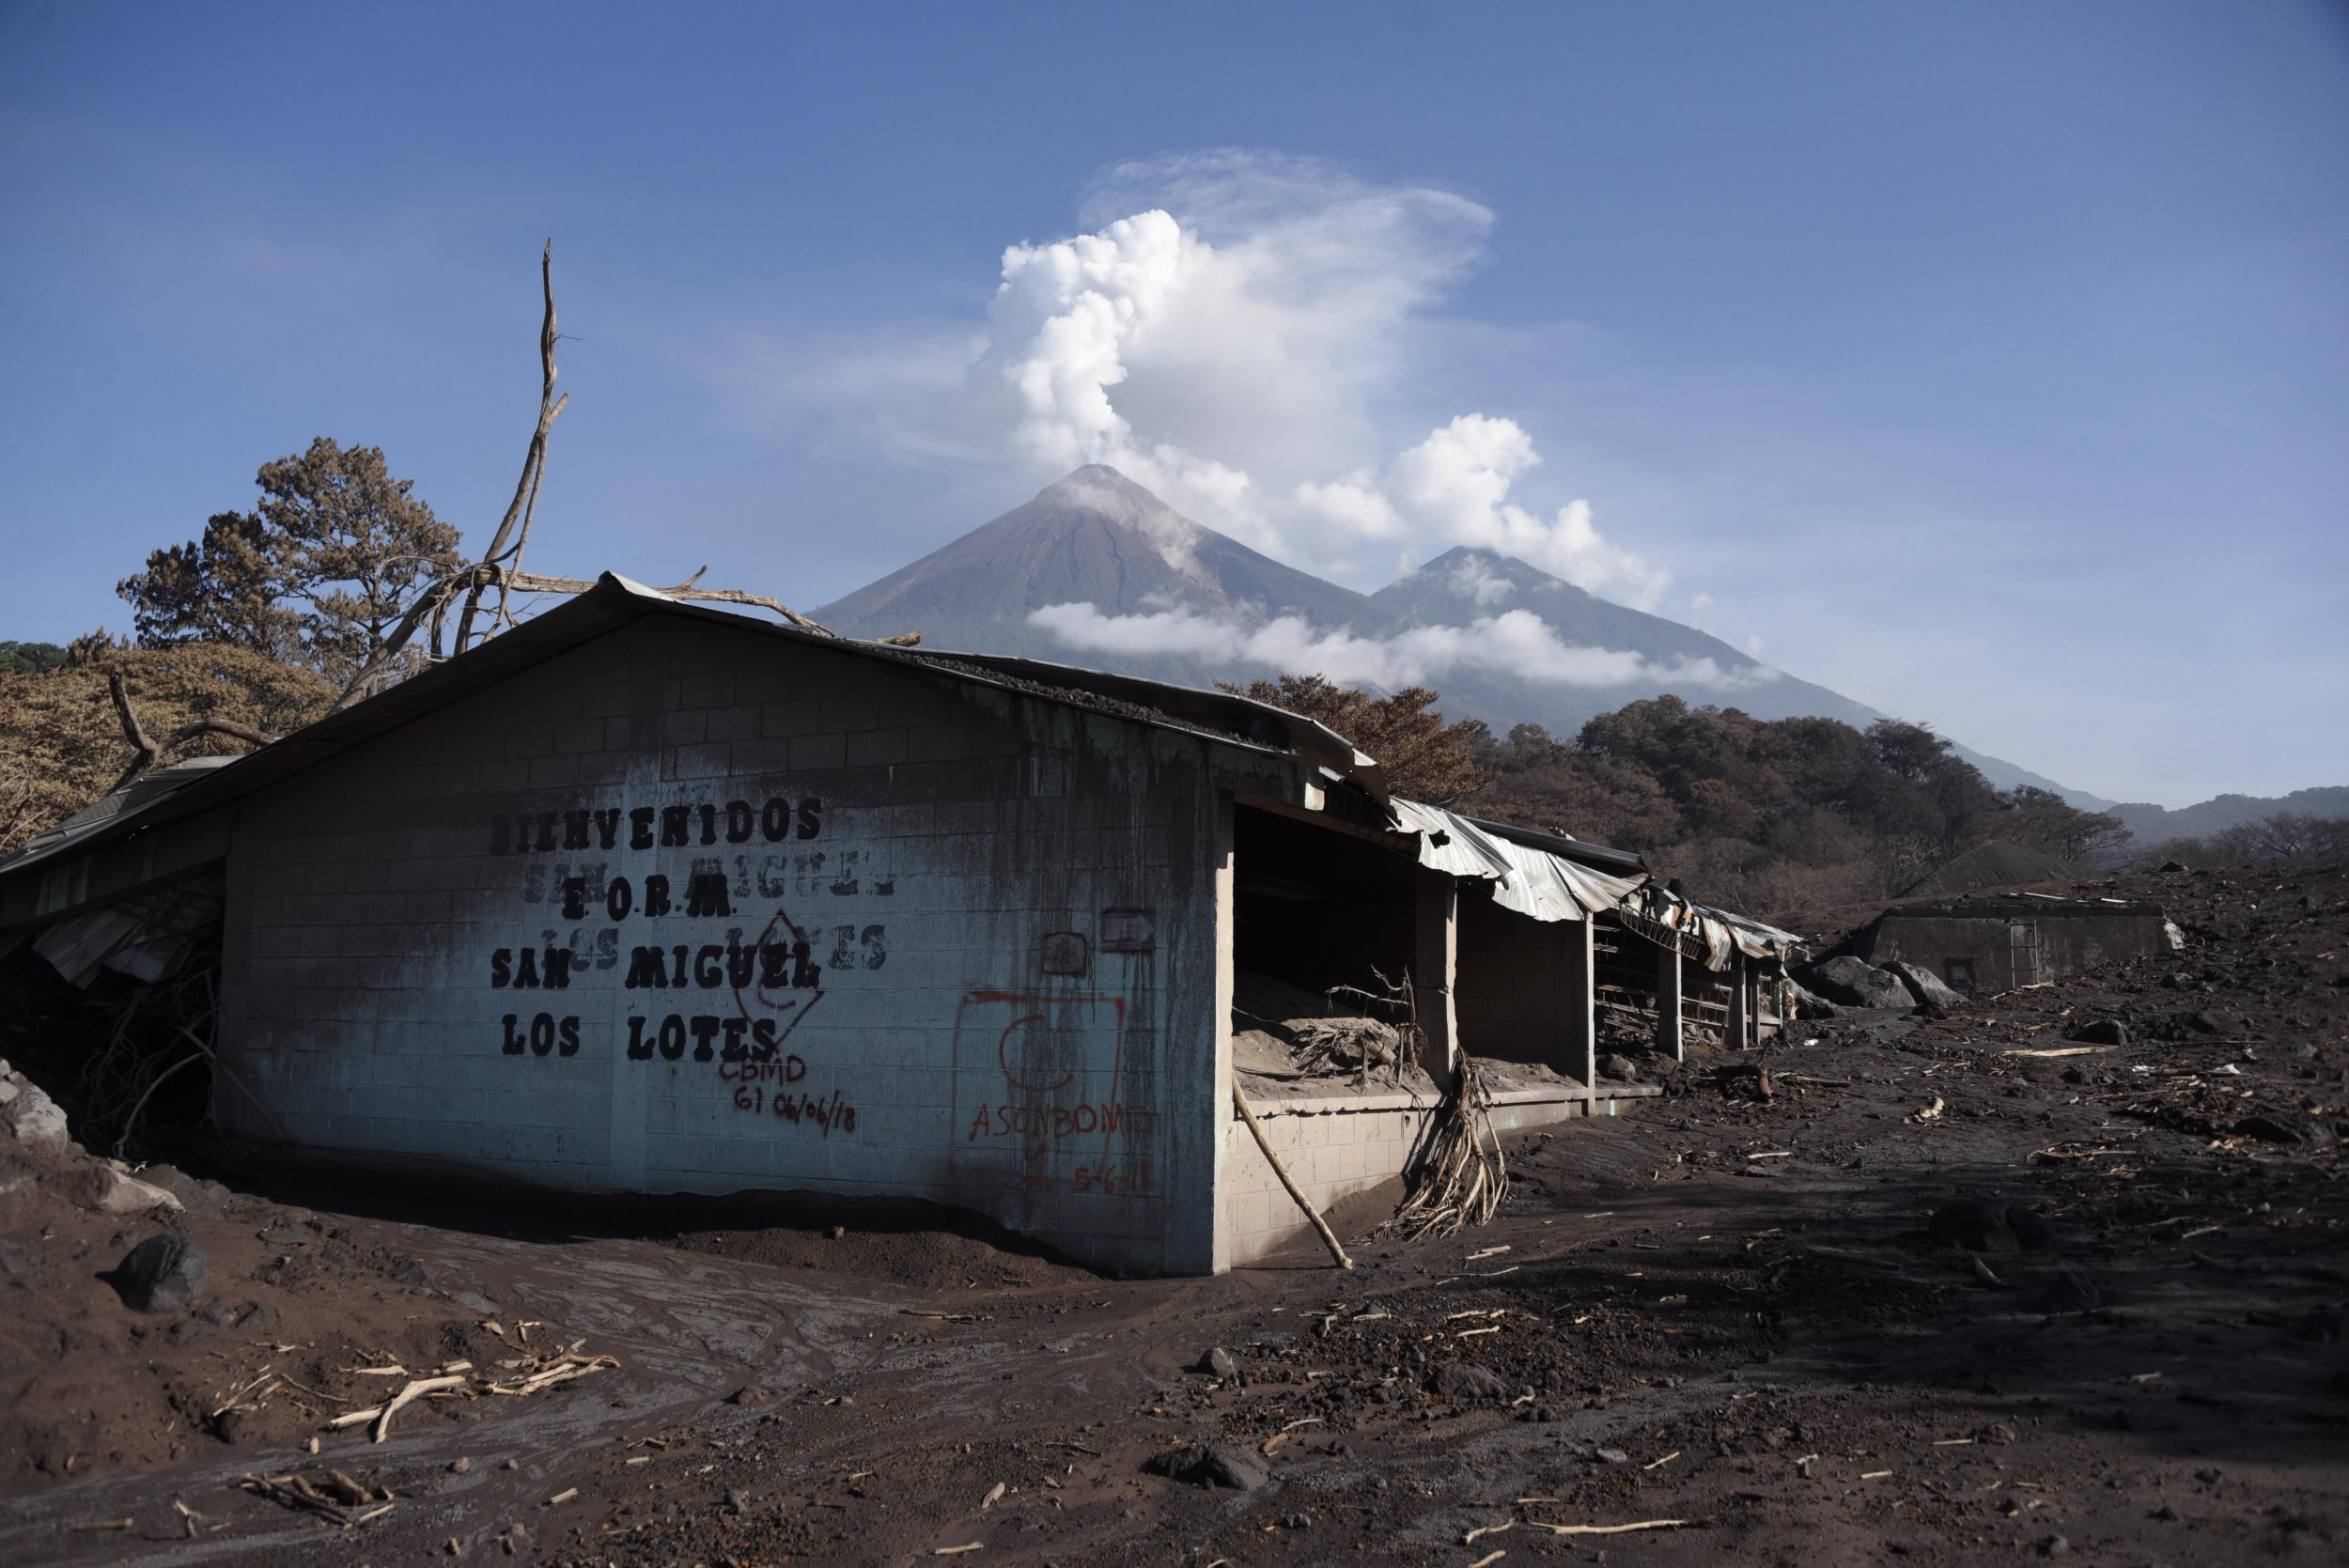 Hundreds of people are still missing after the deadly Guatemalan volcano eruption